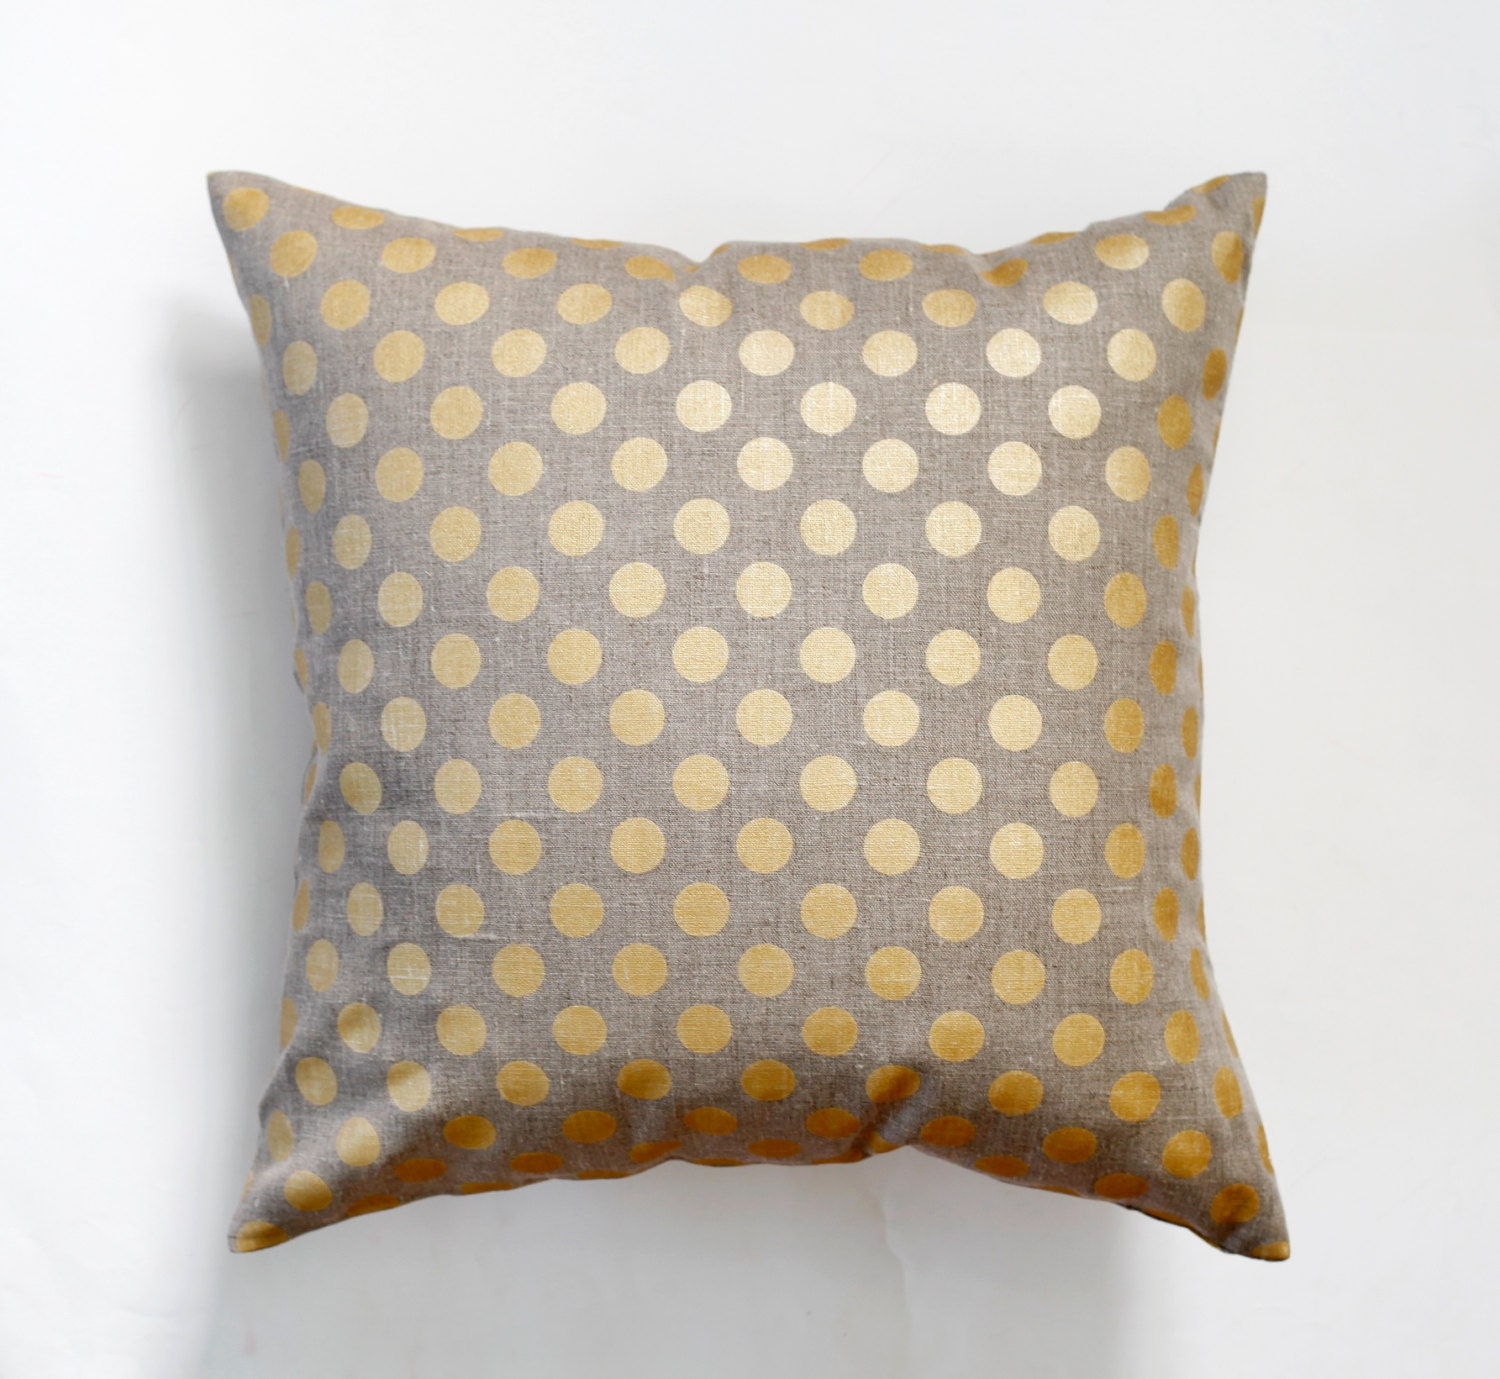 Decorative Linen Pillow Covers : Linen gray pillow cover with gold print dots decorative